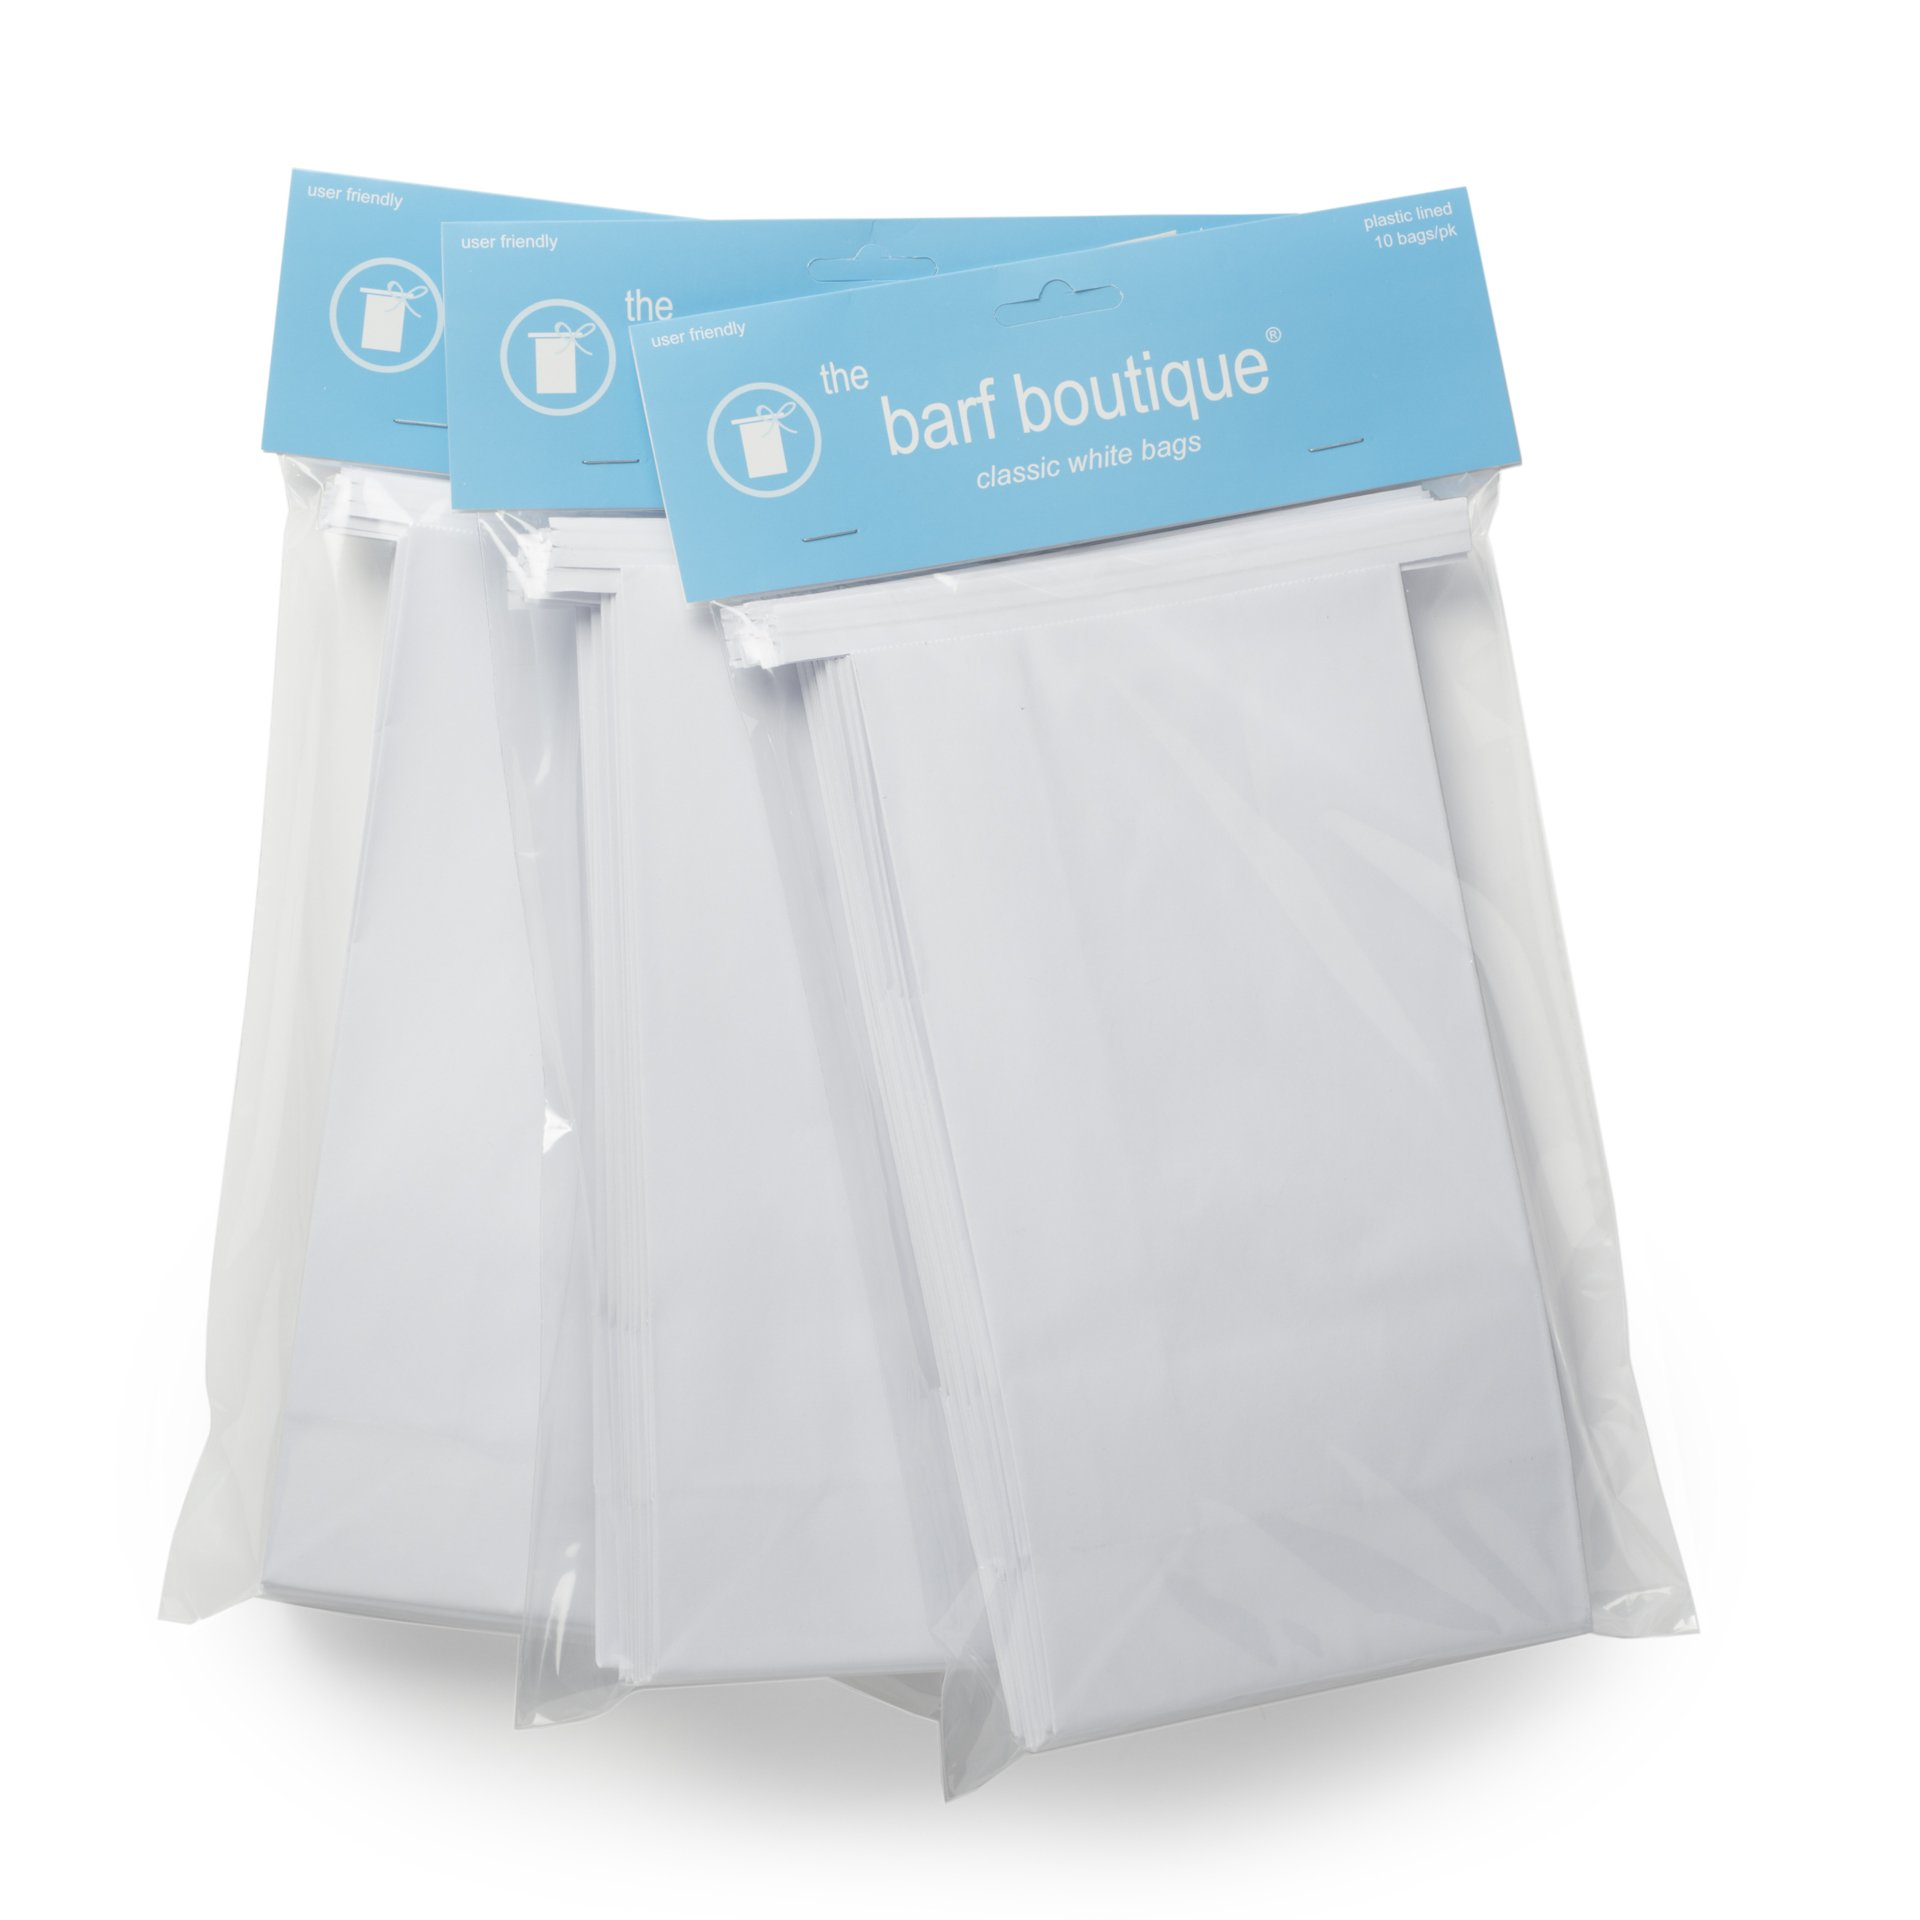 Classic White Vomit/Barf Bags - Travel Motion & Morning Sickness Bags (25/Pk) by The Barf Boutique (Image #2)